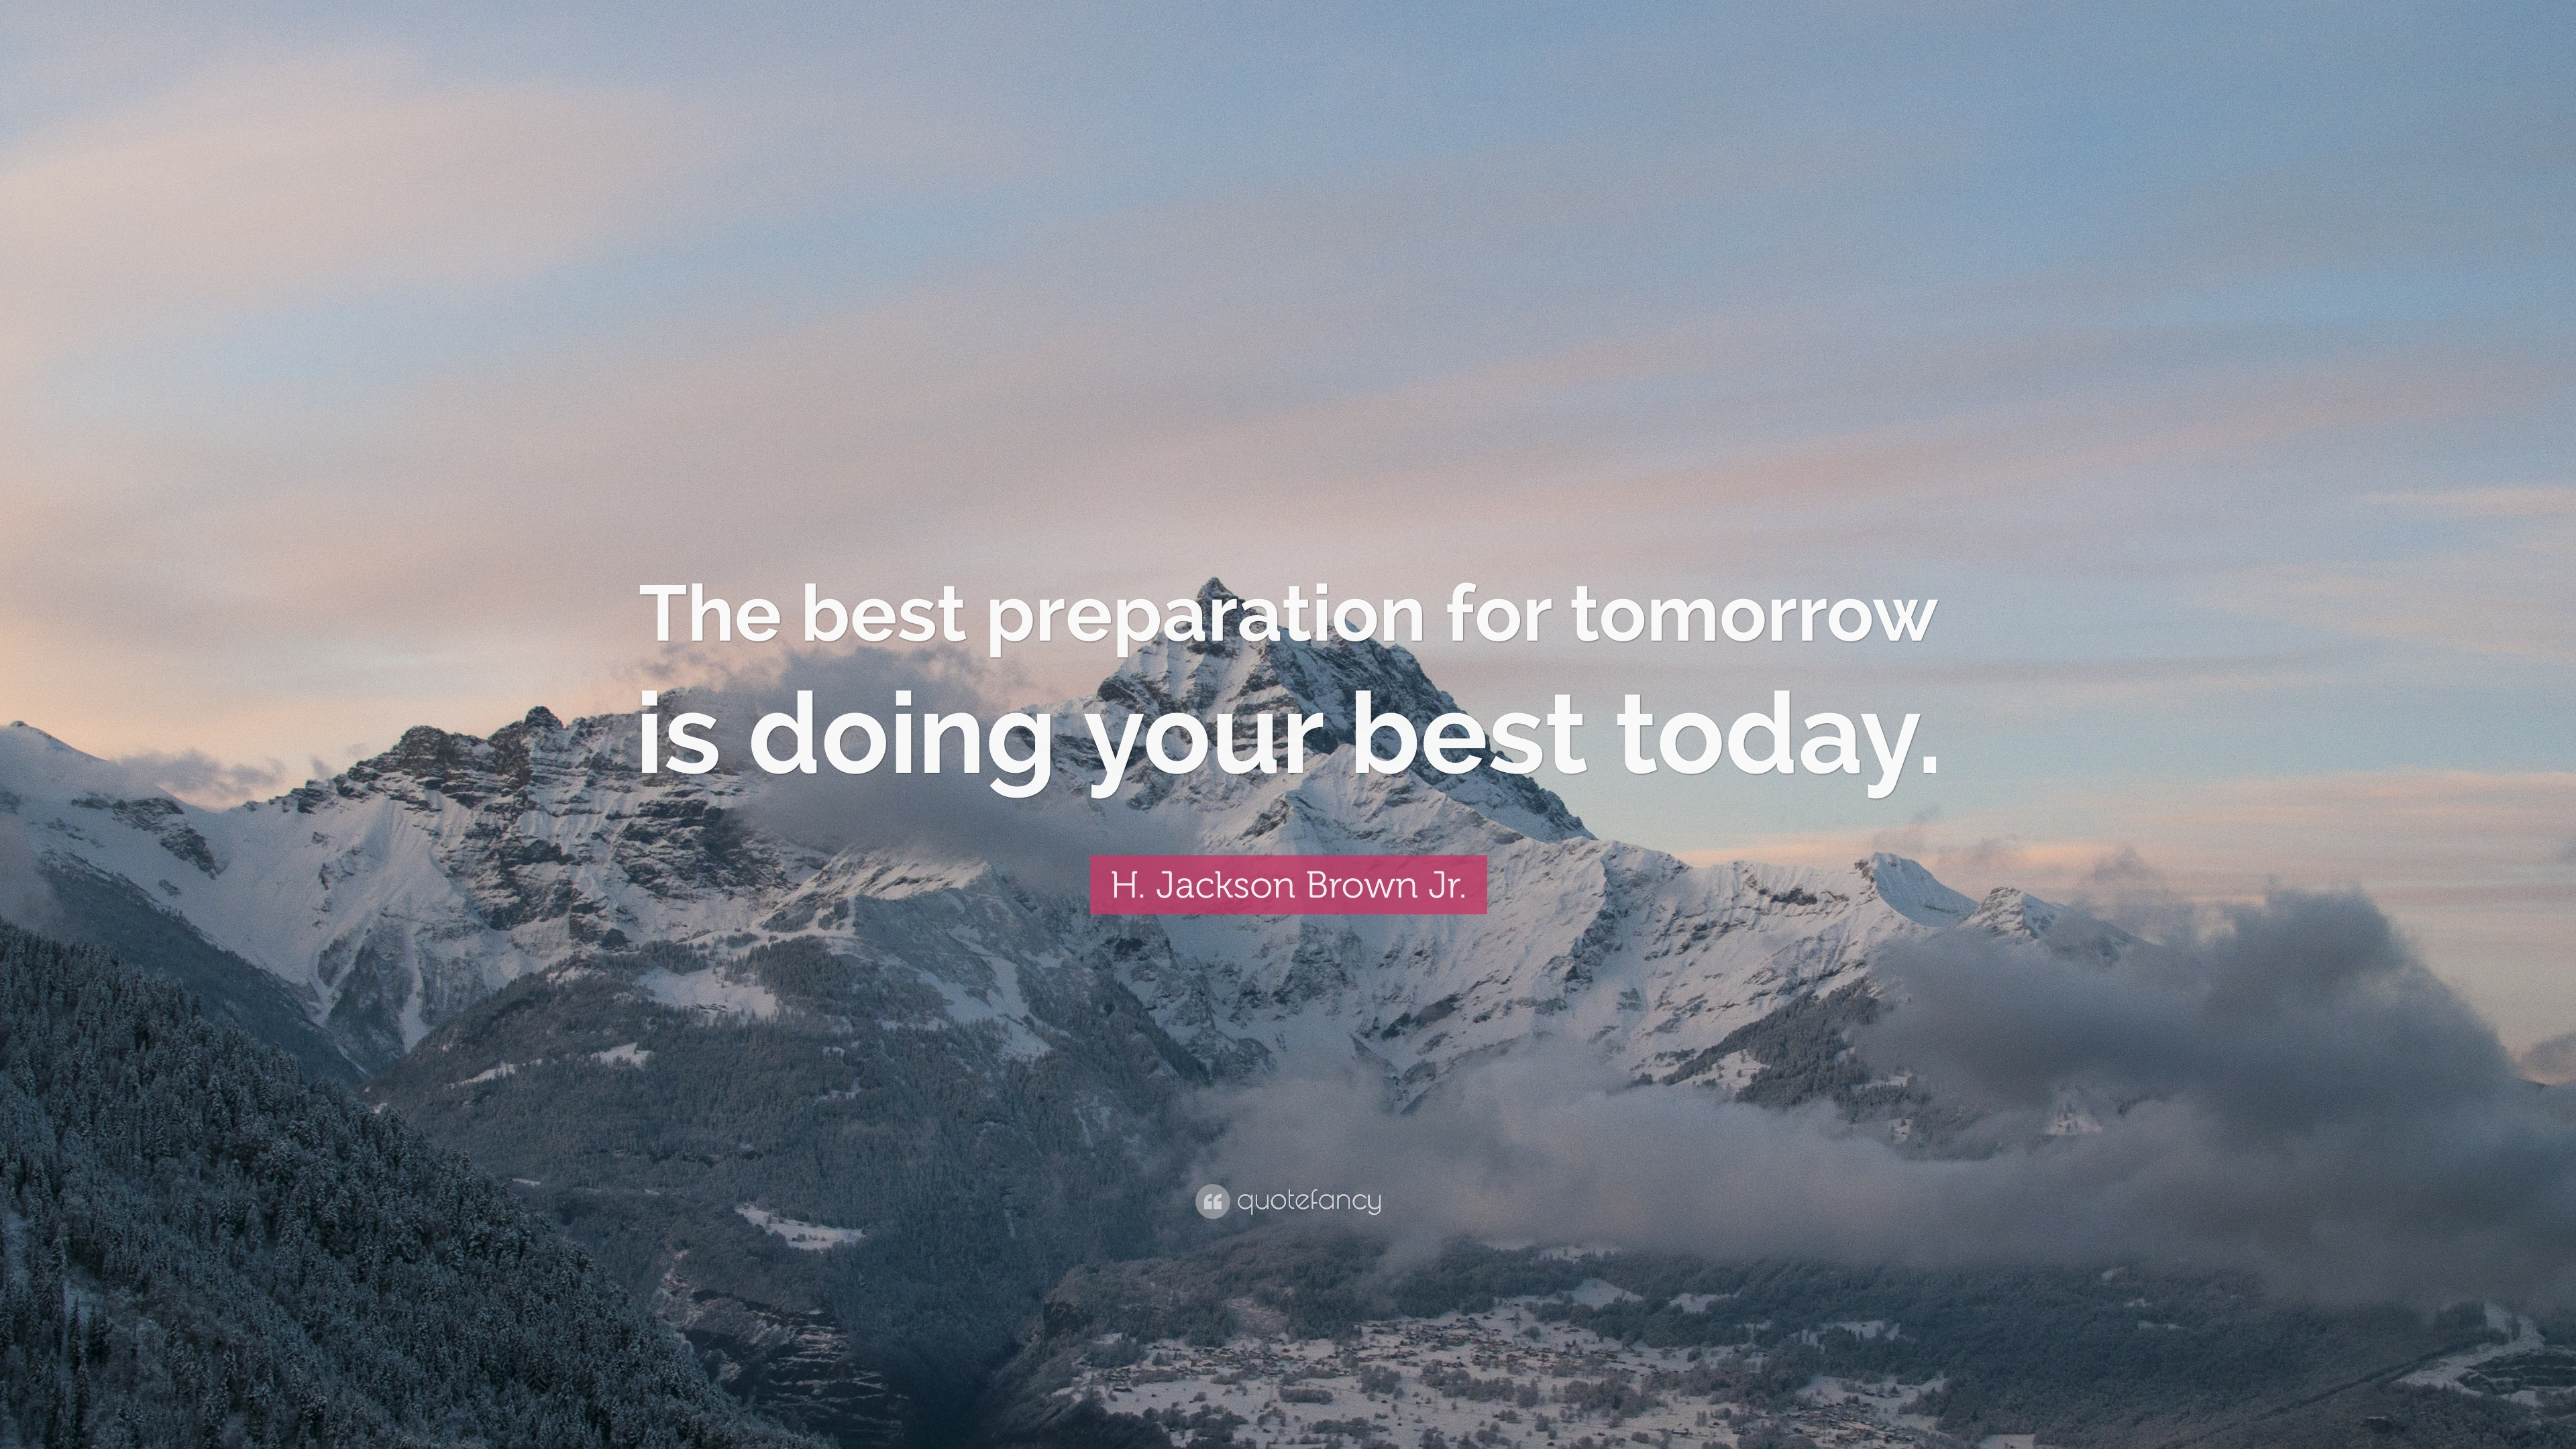 The Best Preparation For Tomorrow Is Doing Your Best Today: Hard Work Quotes (40 Wallpapers)